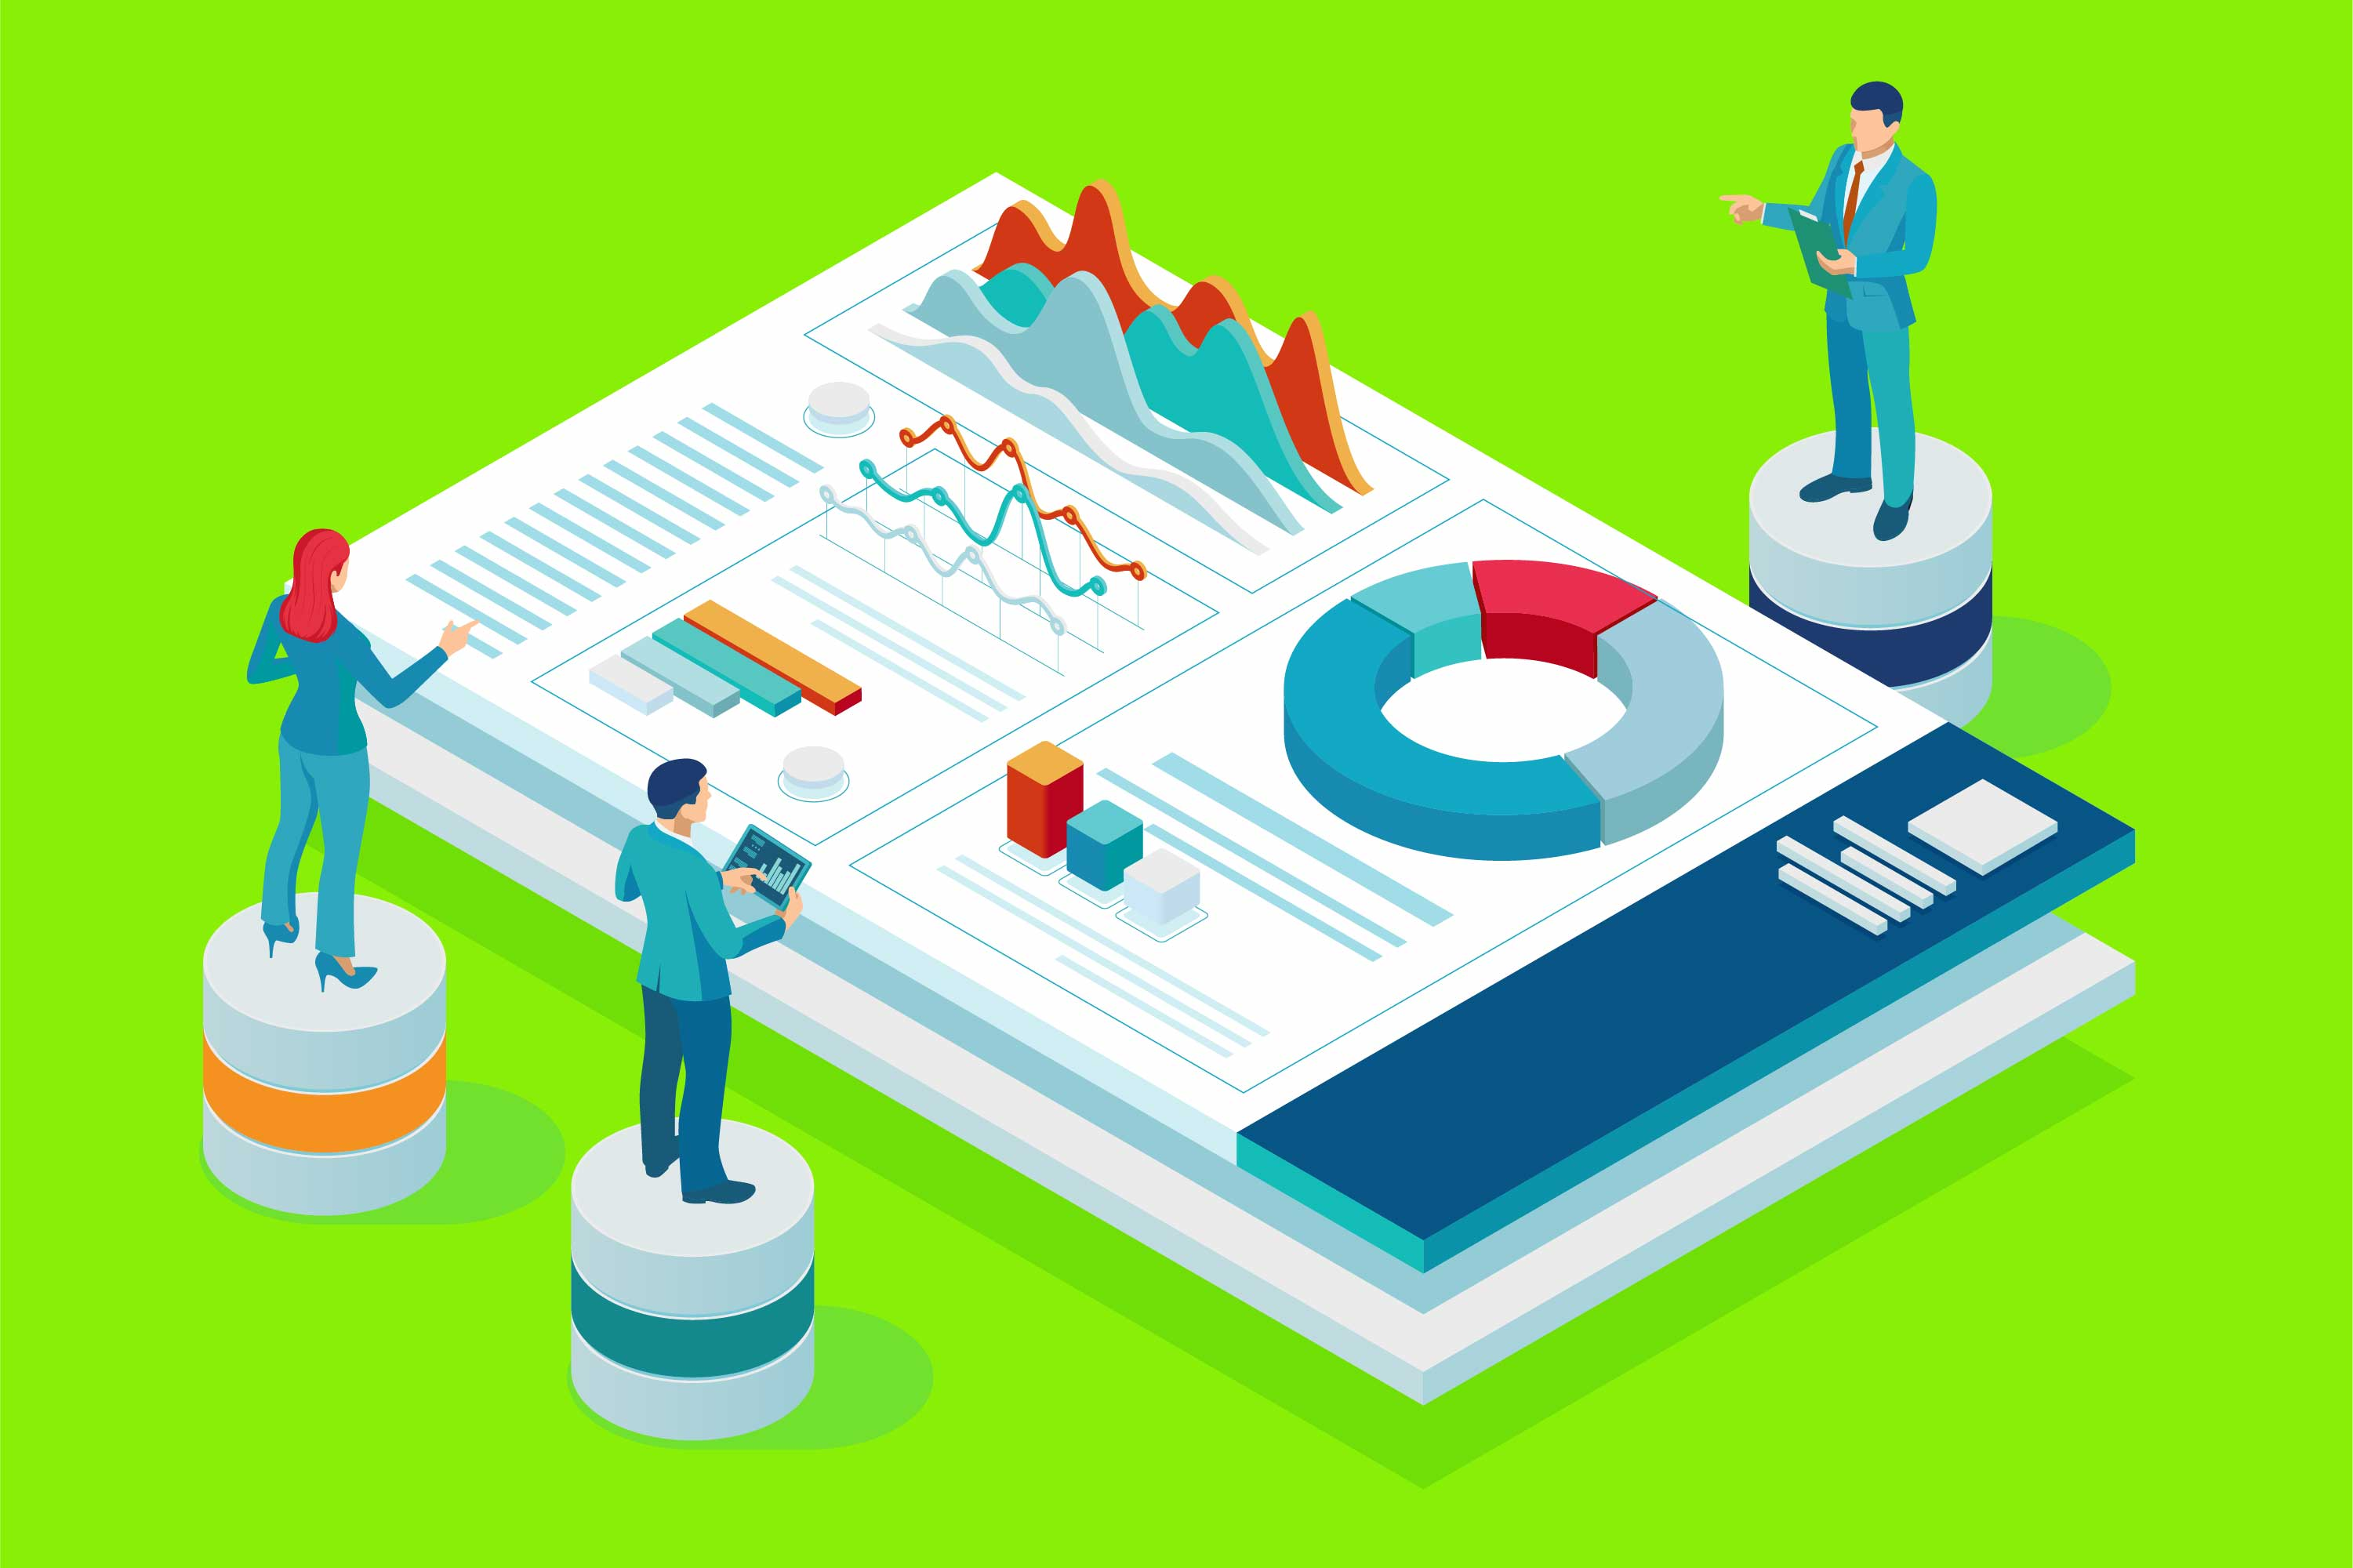 Business people look at data